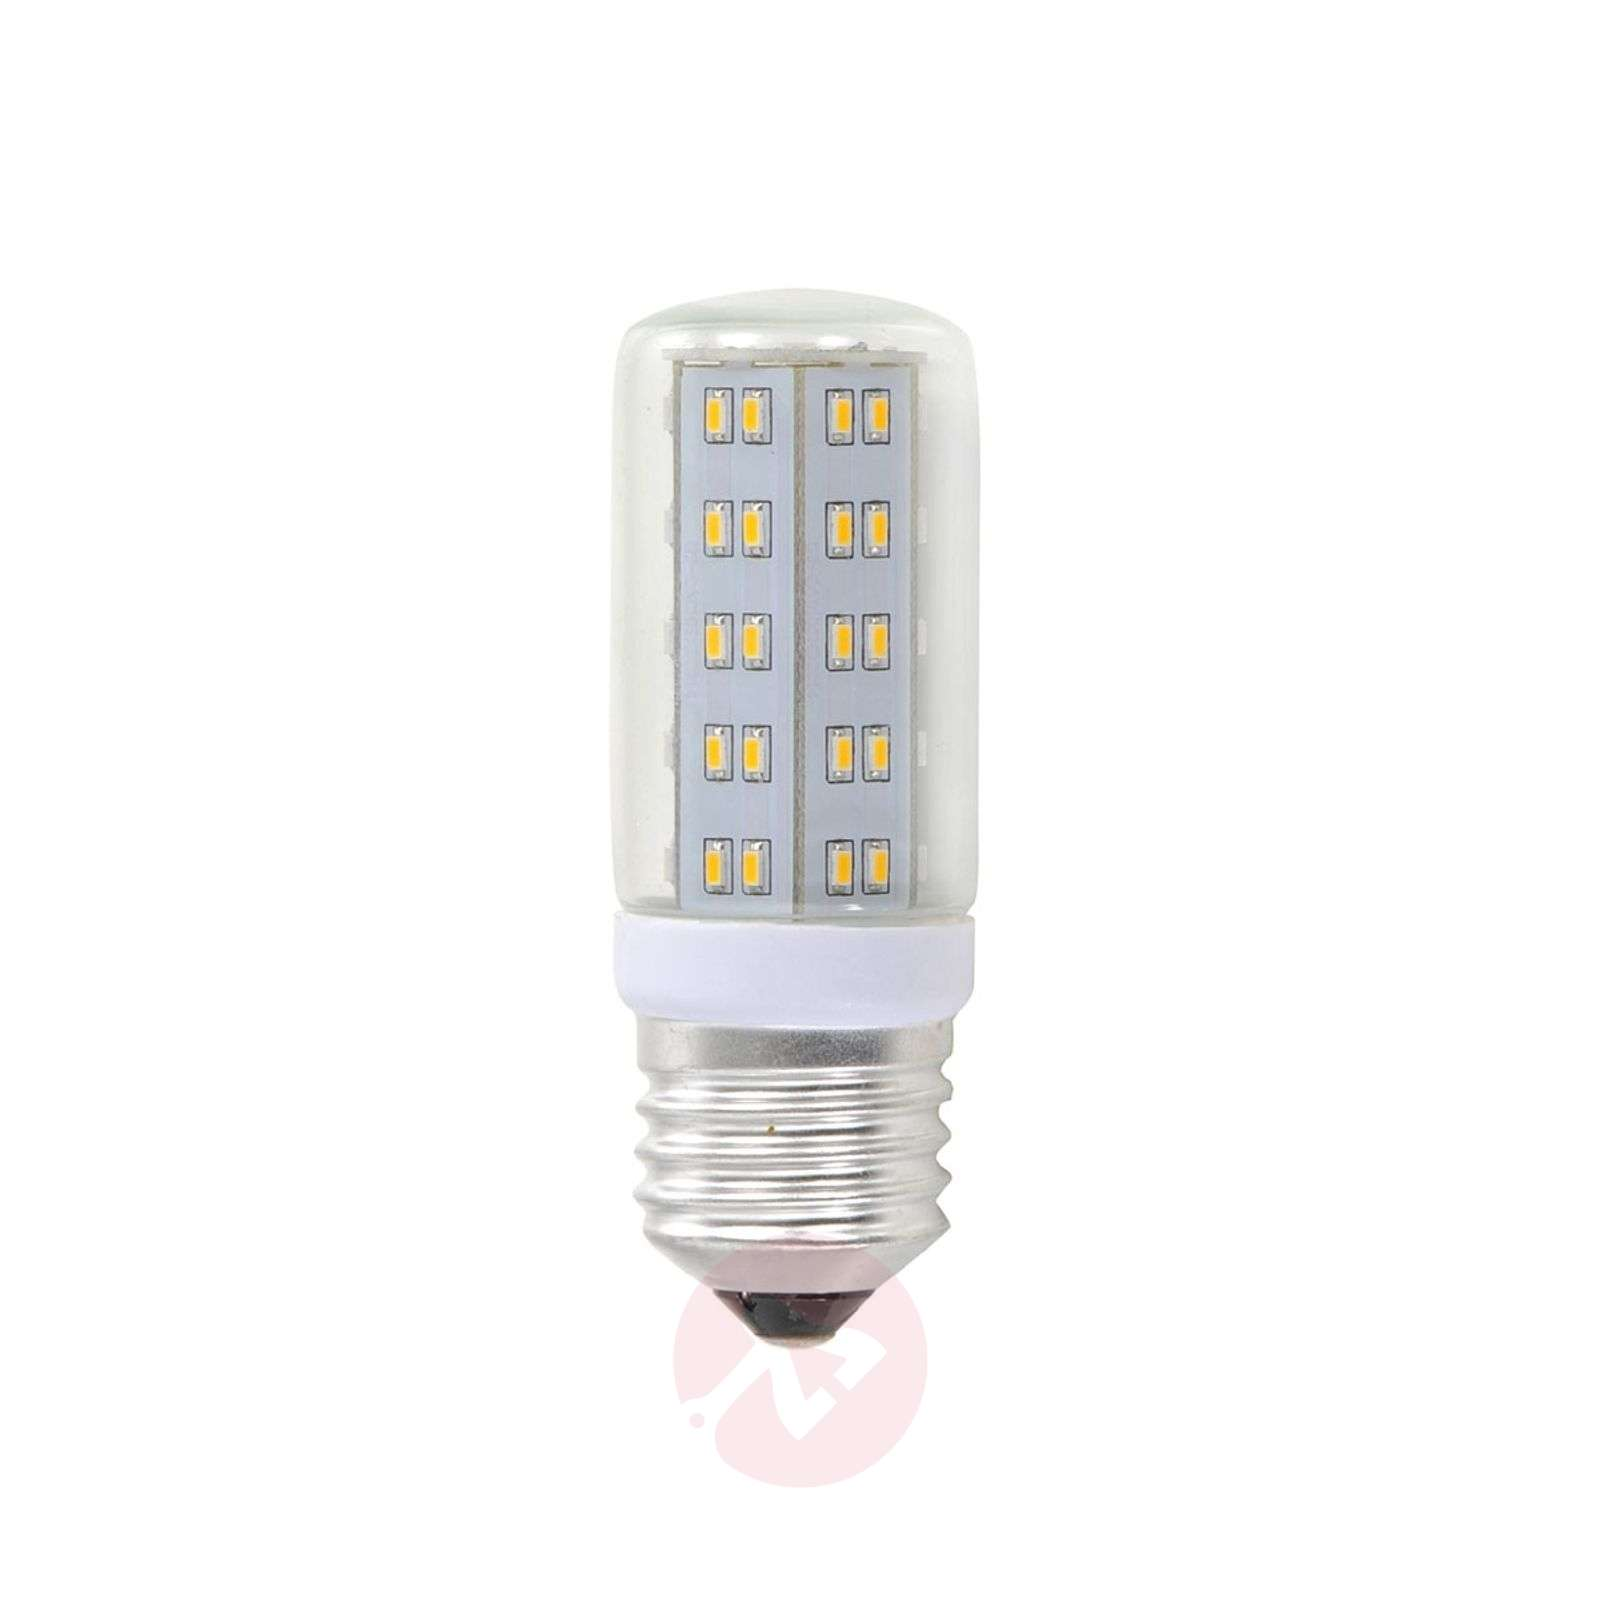 Ampoule LED tubulaire E27 3,8 W transp à 69 LED-6002621-01